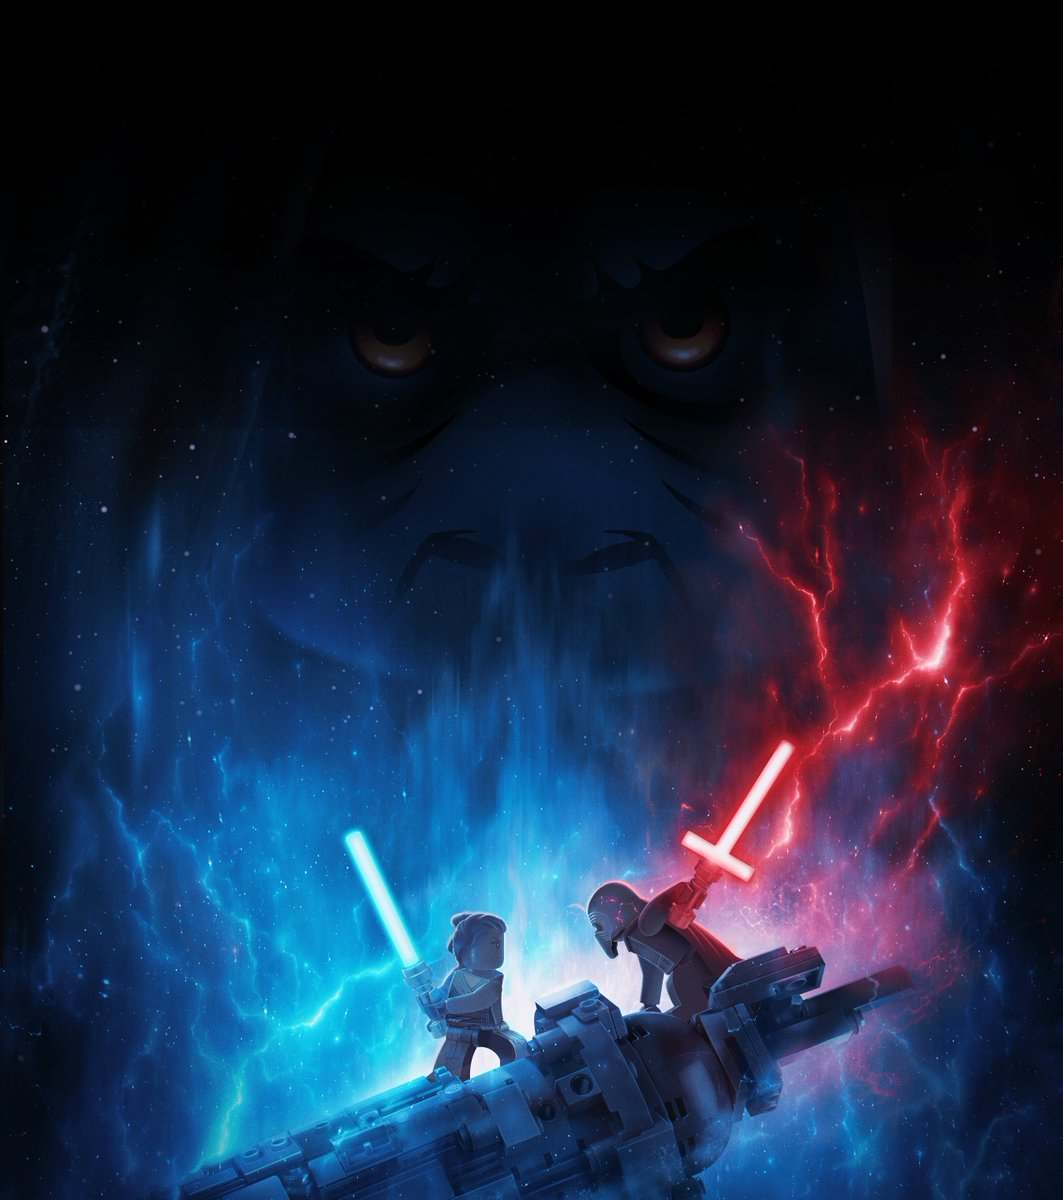 Zcure1 On Twitter Lego Variant Of The Teaser Poster For Star Wars The Rise Of Skywalker Lol I Think All The Teaser Variants Are Out Now So Bring On The Theatrical Poster